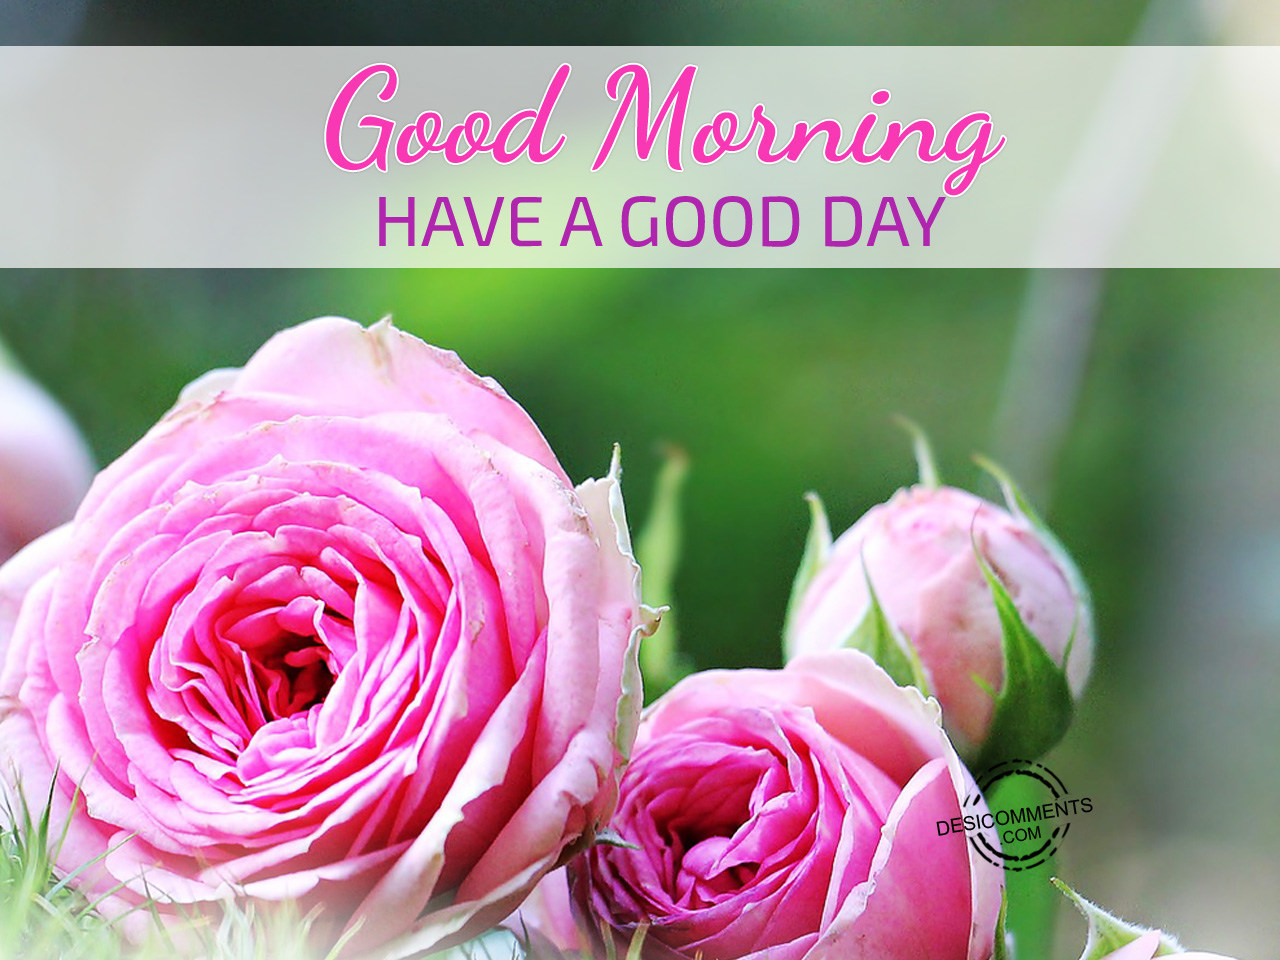 Have A Good Day Morning - DesiComments.com Have A Good Day